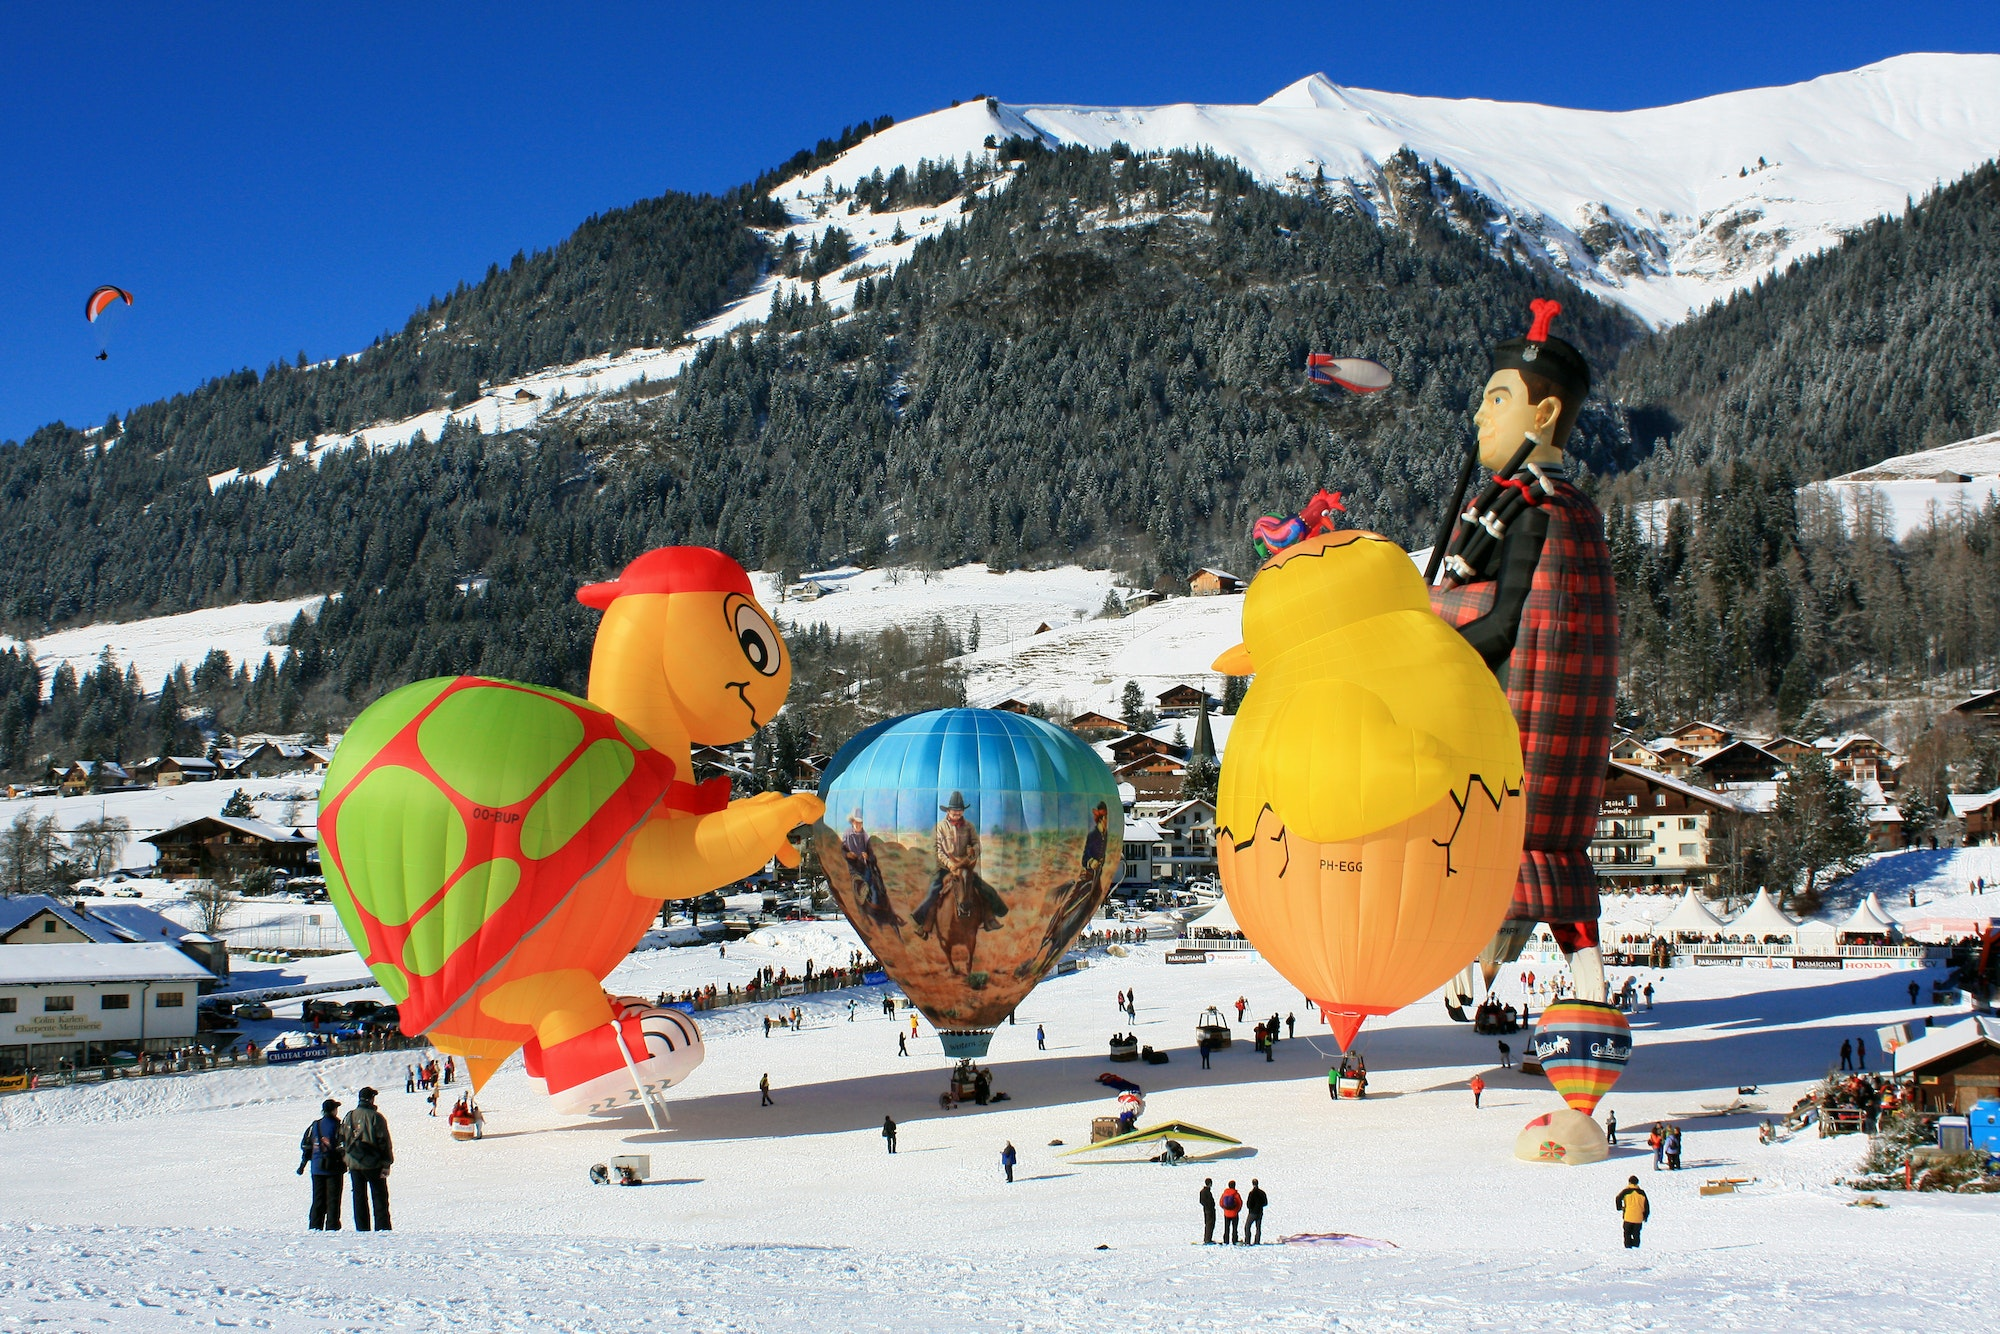 Château d'Oex is a popular adventure destination during both winter and summer in Switzerland.